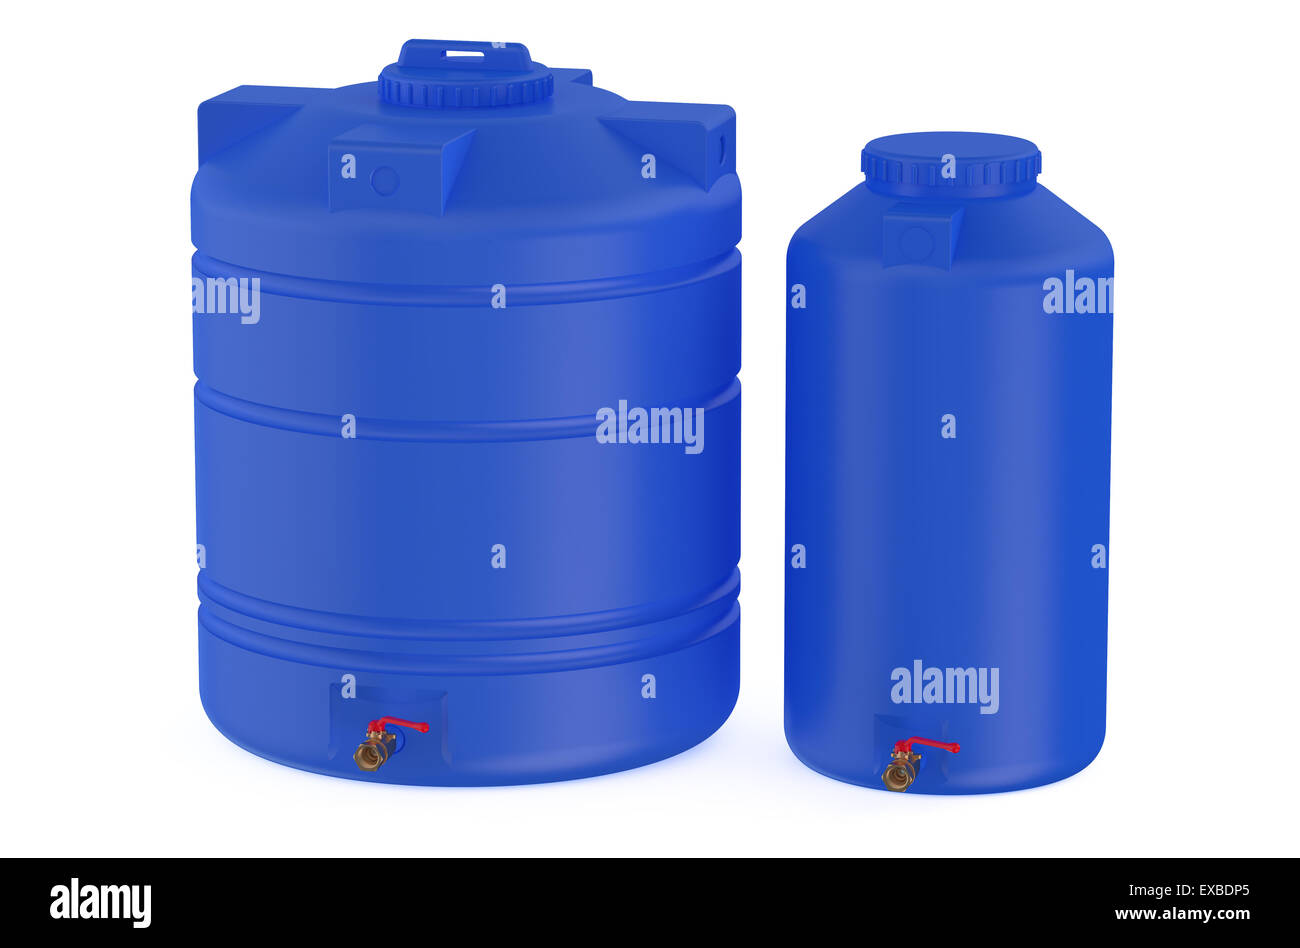 Tanks Cut Out Stock Images & Pictures - Alamy on